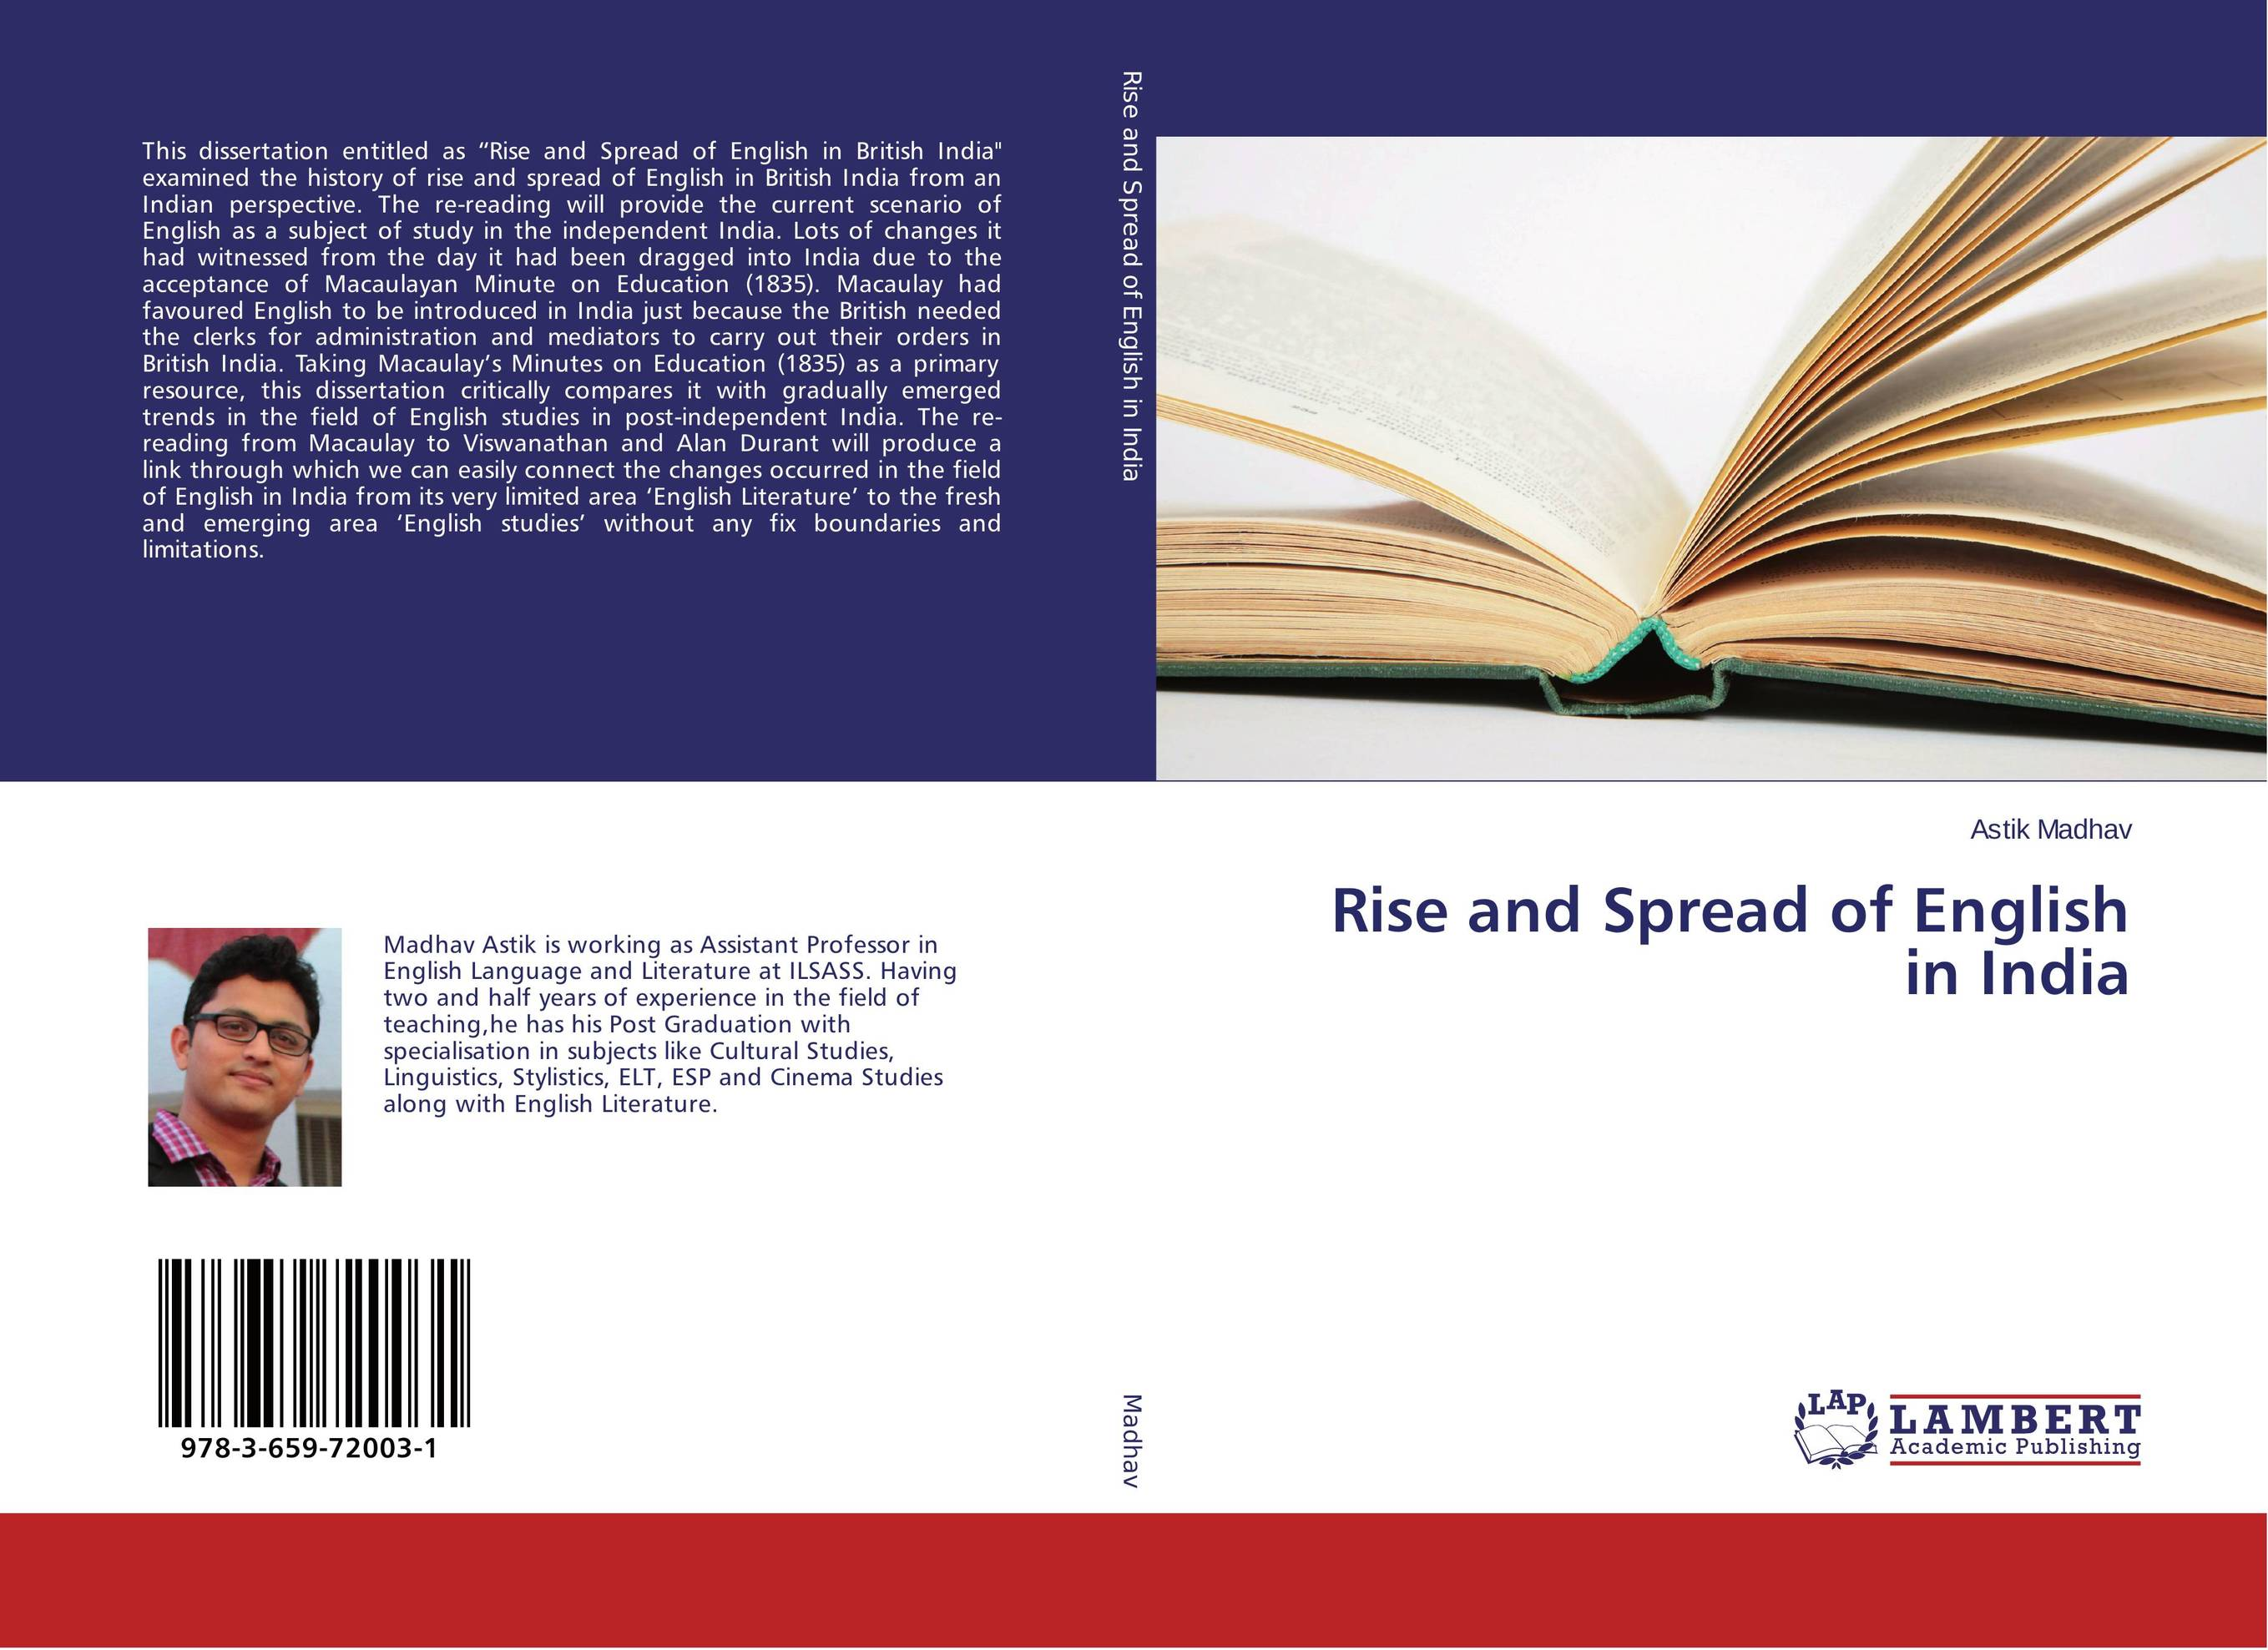 Rise and Spread of English in India sandip chakraborty adolescents and youth health in india